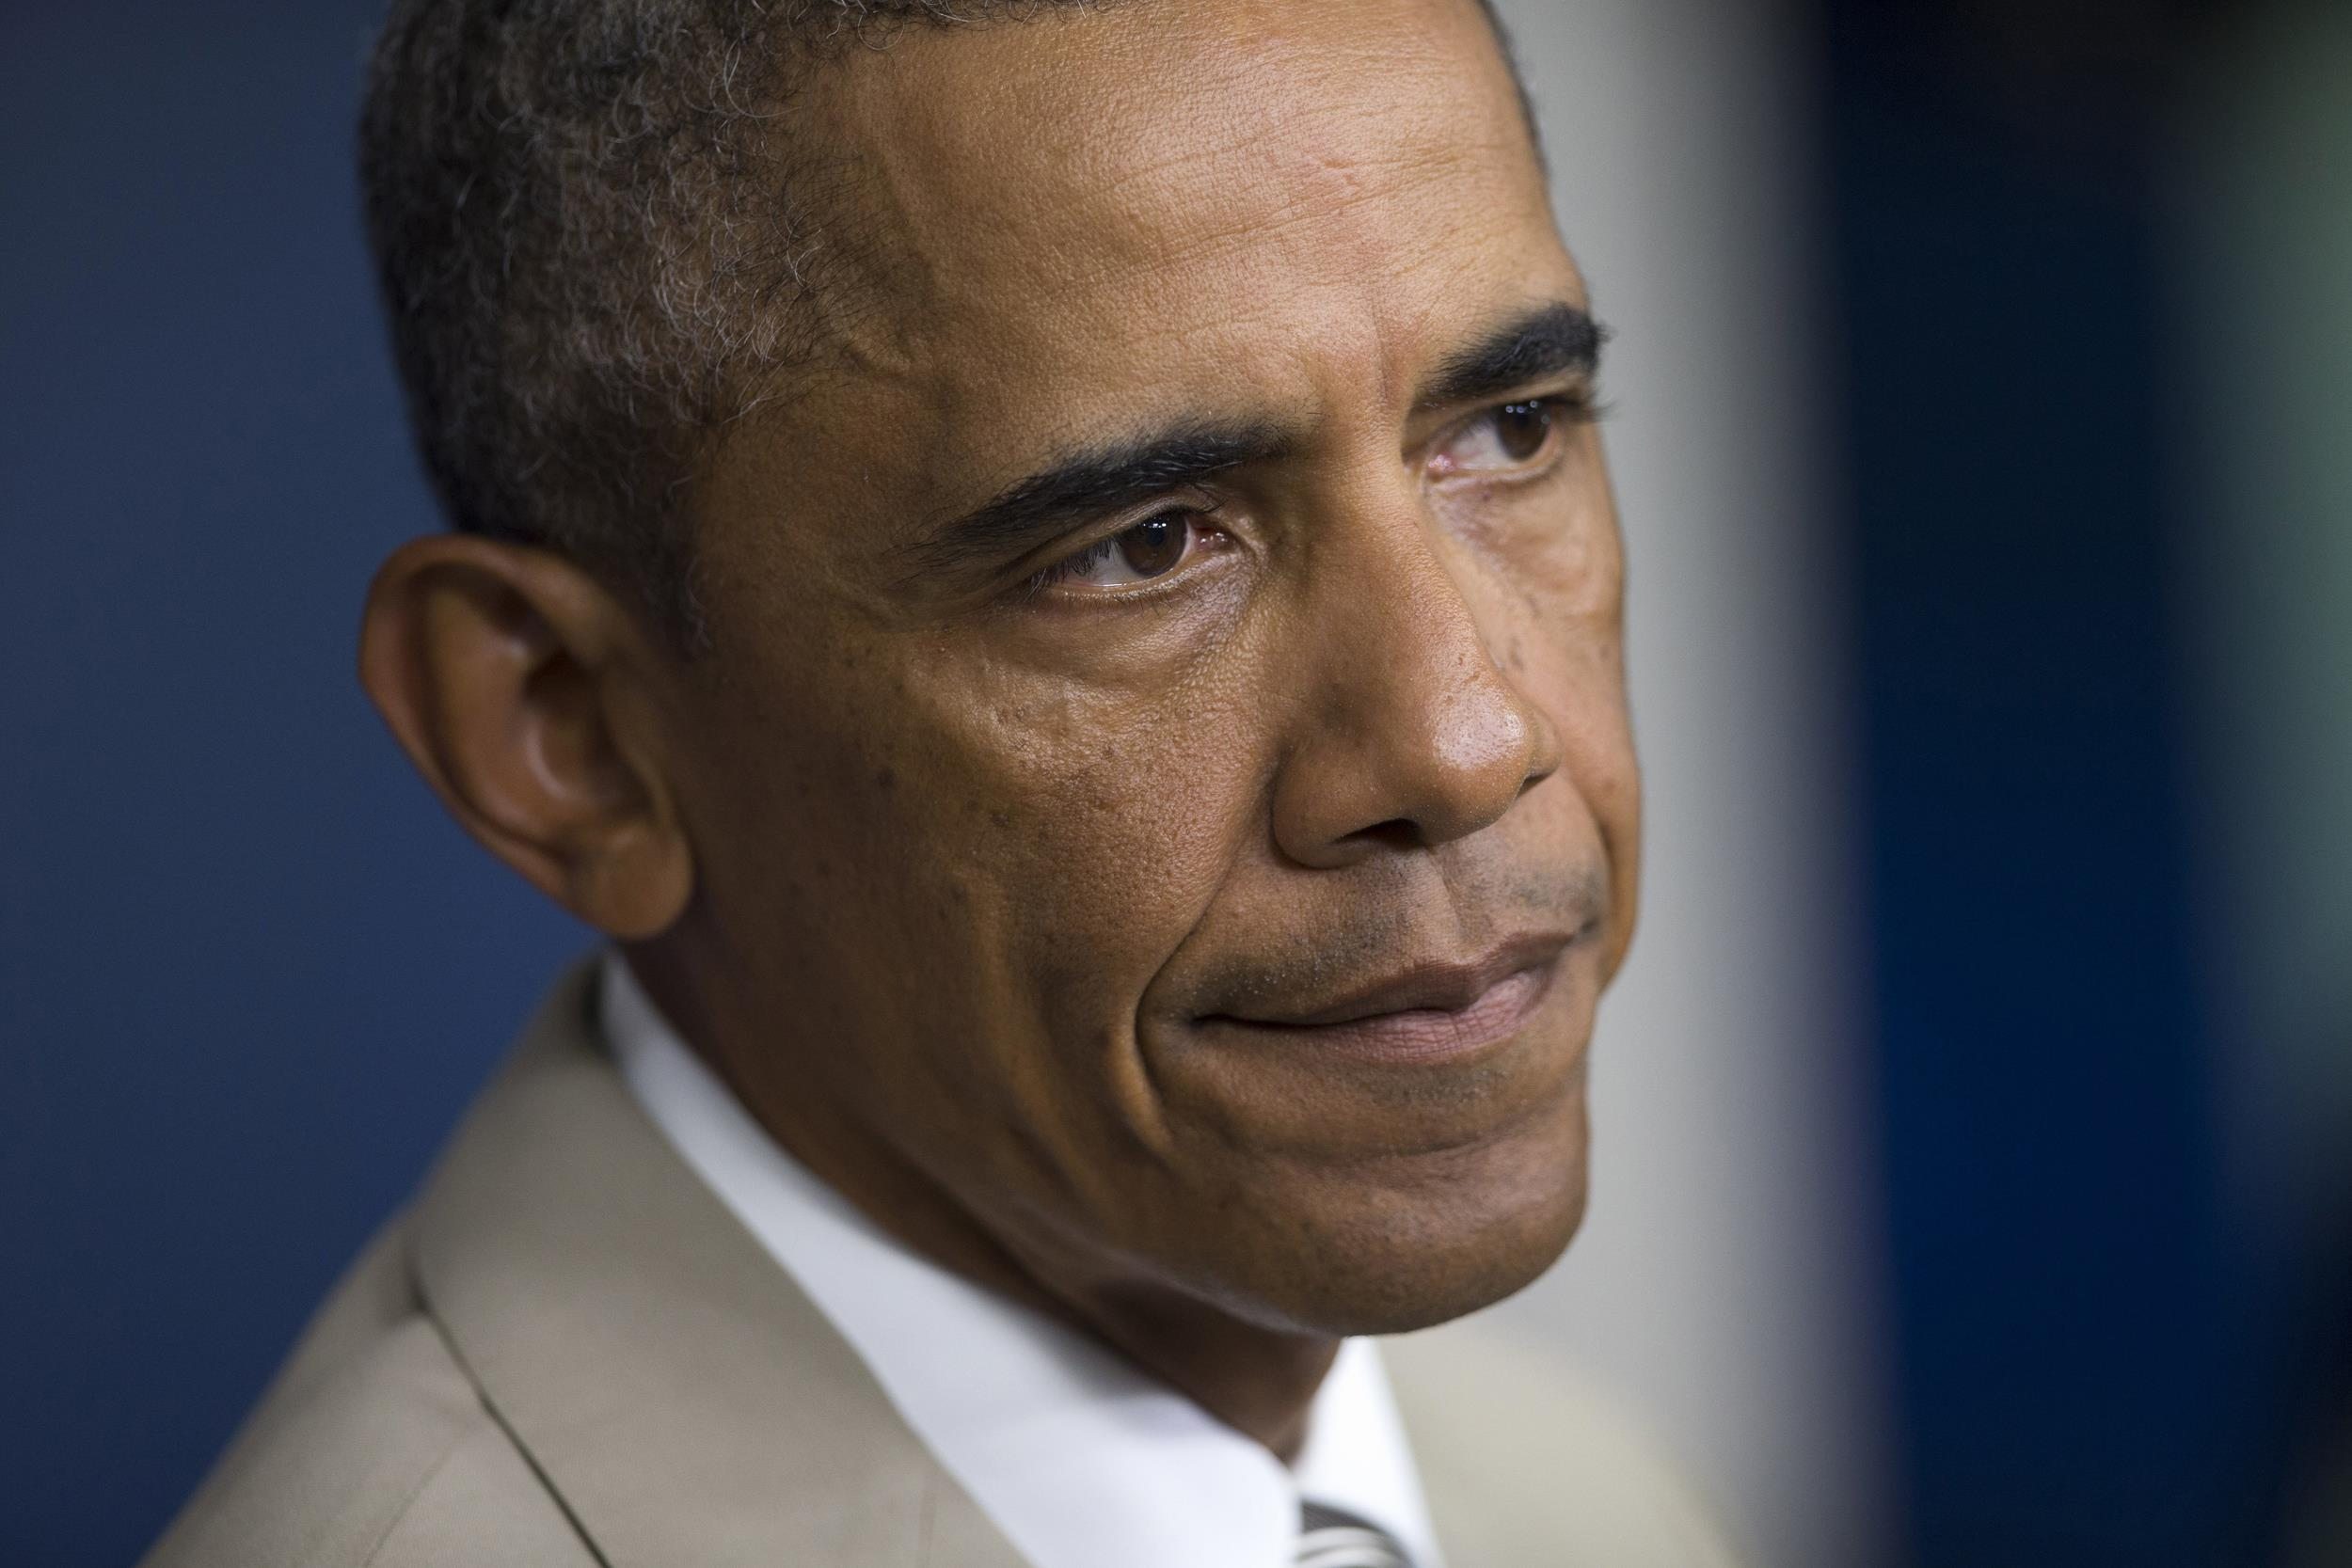 Image: President Barack Obama listens to a question in the James Brady Press Briefing Room